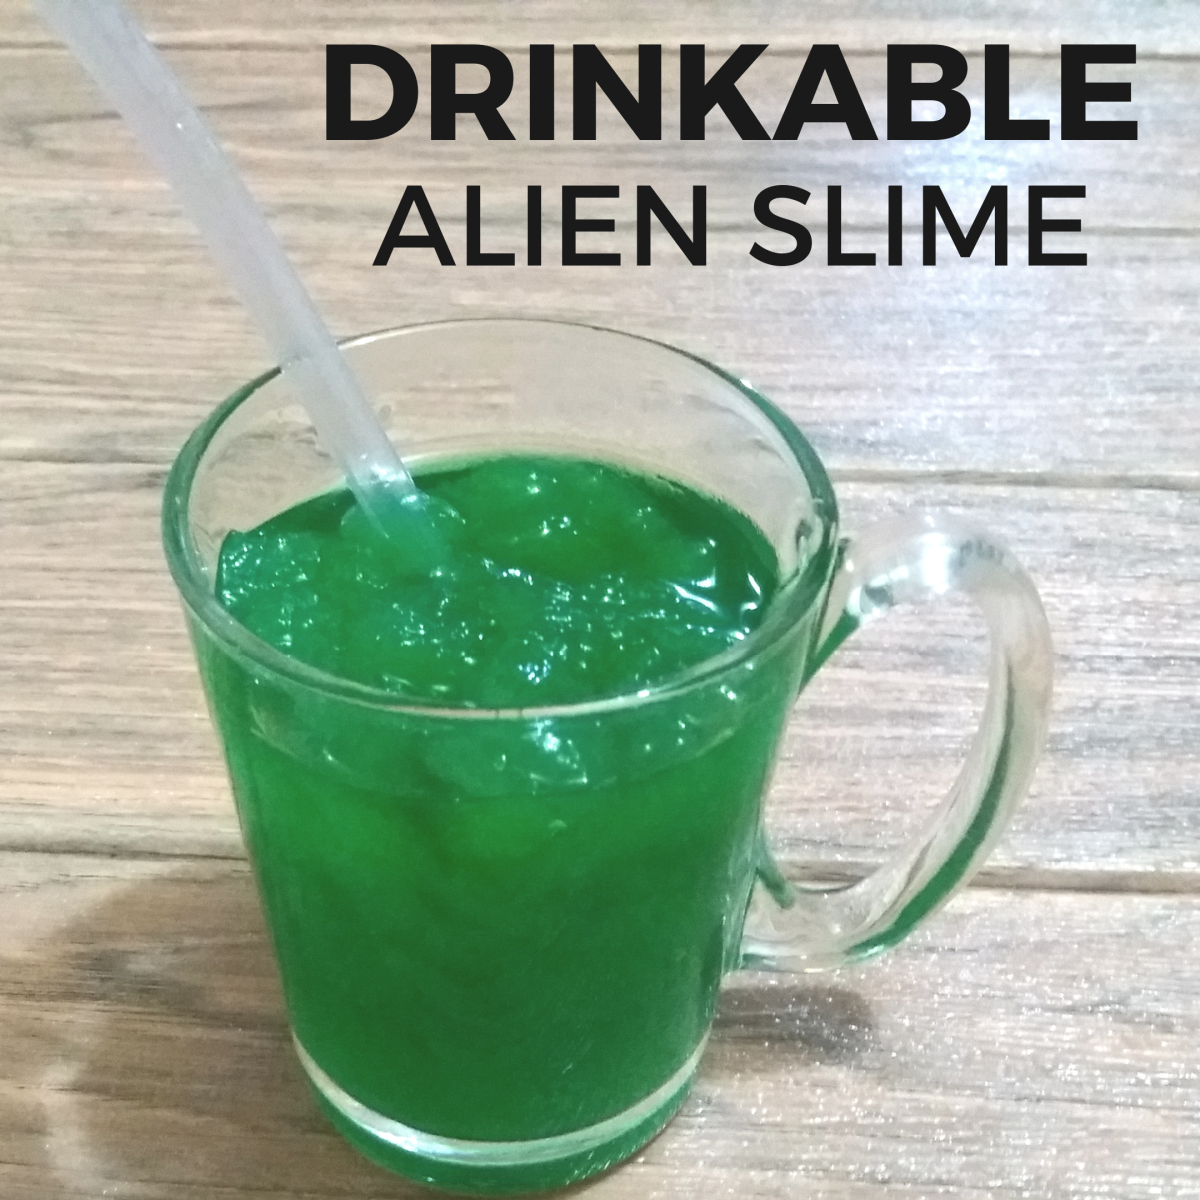 How to Make an Alien Slime Drink (Inspired by